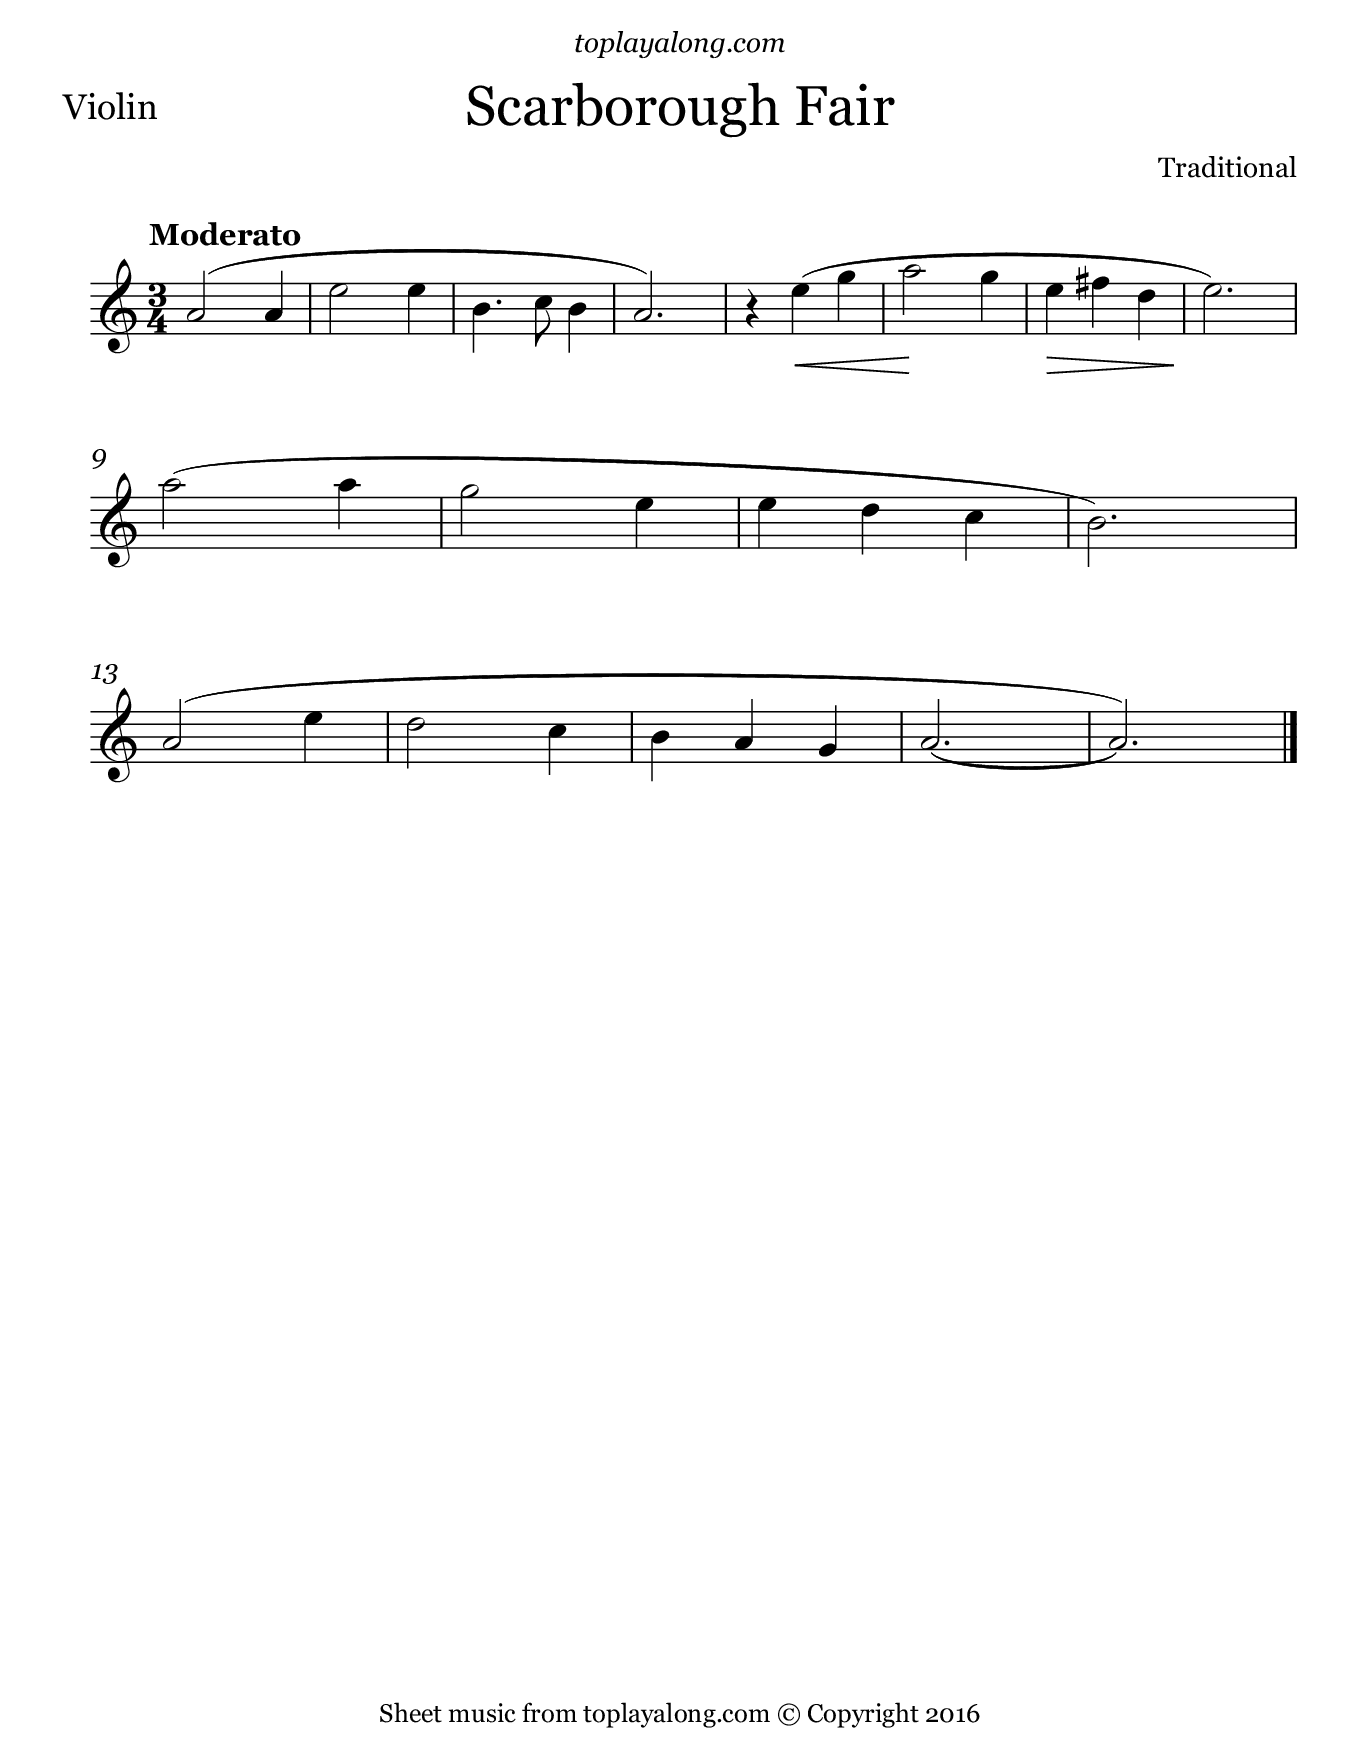 Scarborough Fair. Sheet music for Violin, page 1.